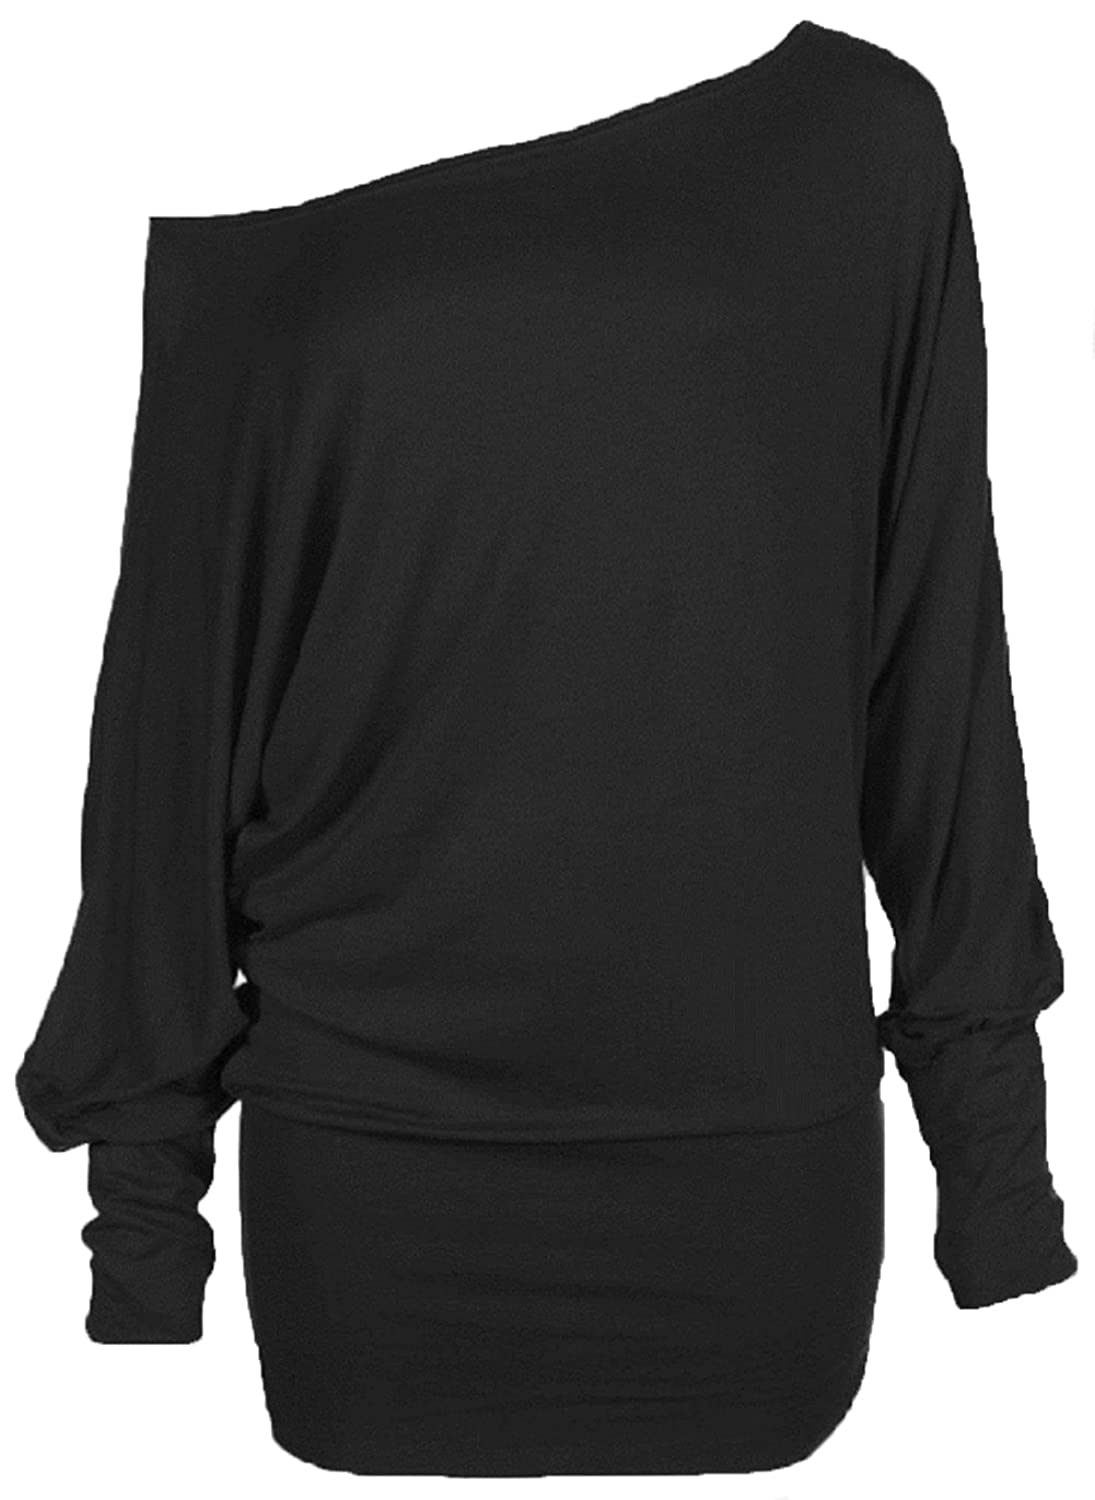 Hot Hanger Womens Long Sleeve Off Shoulder Batwing Tunic Top